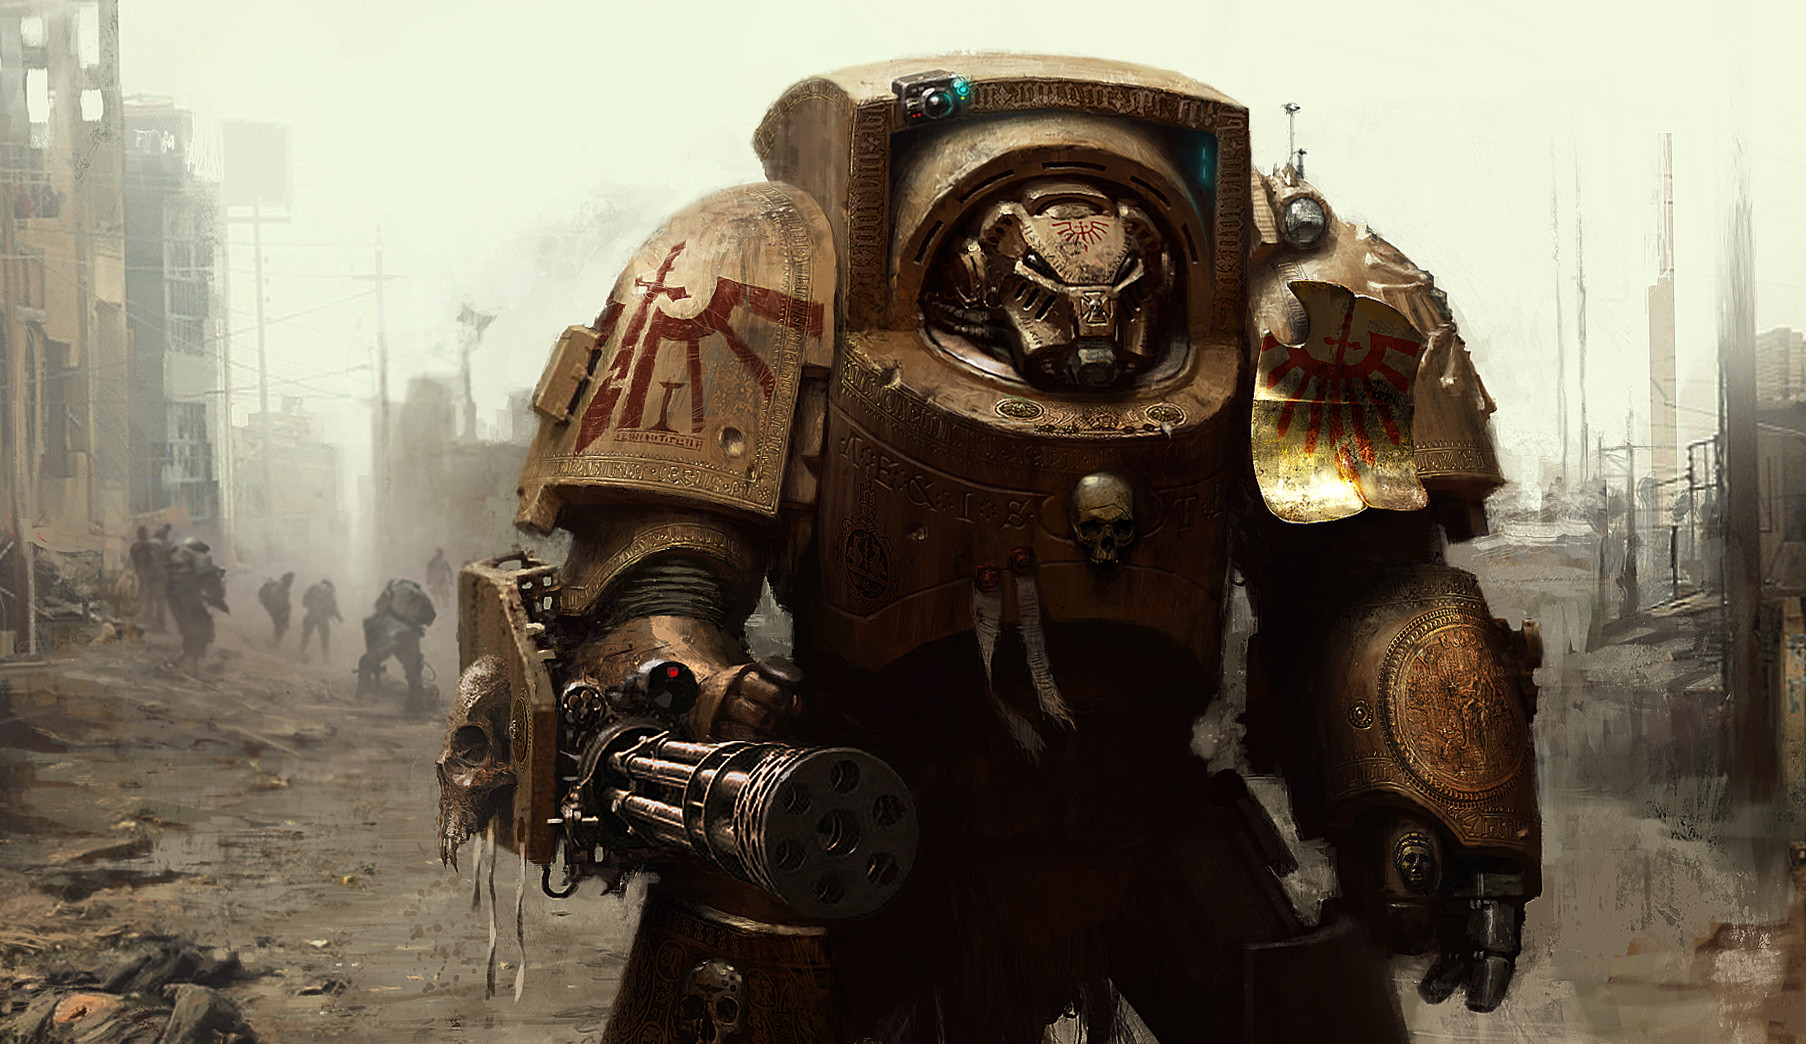 deathwing 40k art - photo #16